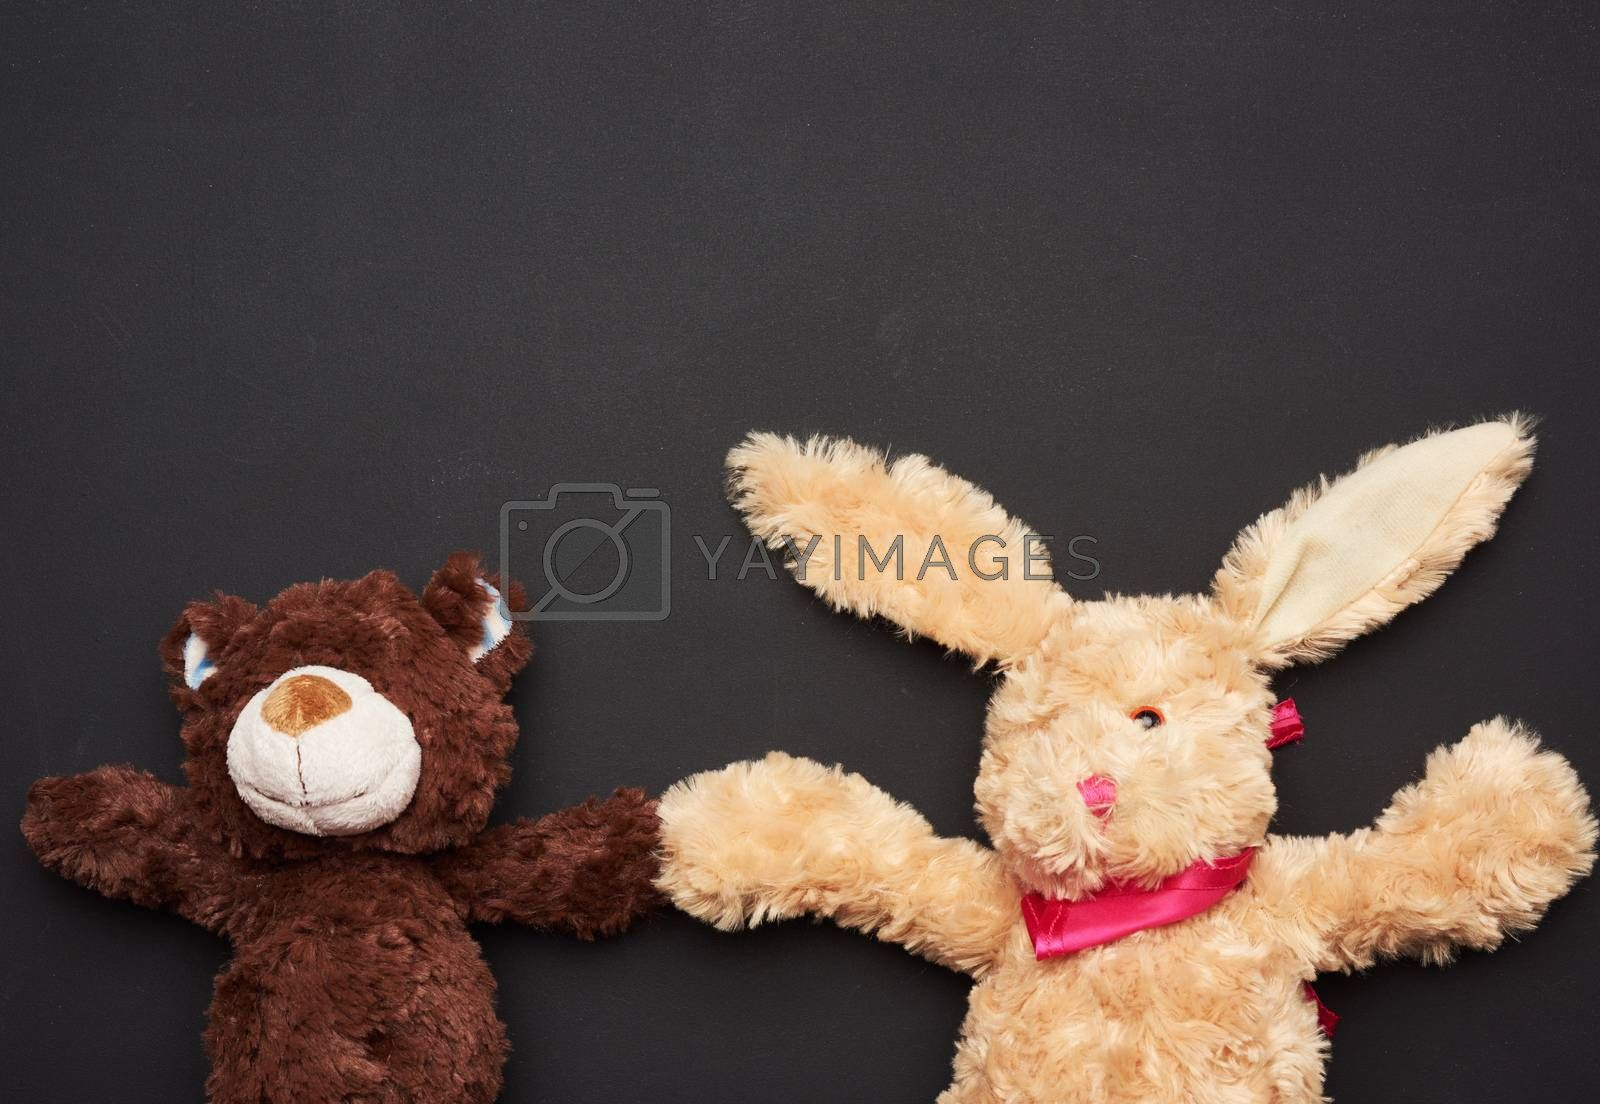 beige plush rabbit toy with long ears and a brown bear on a black background, copy space